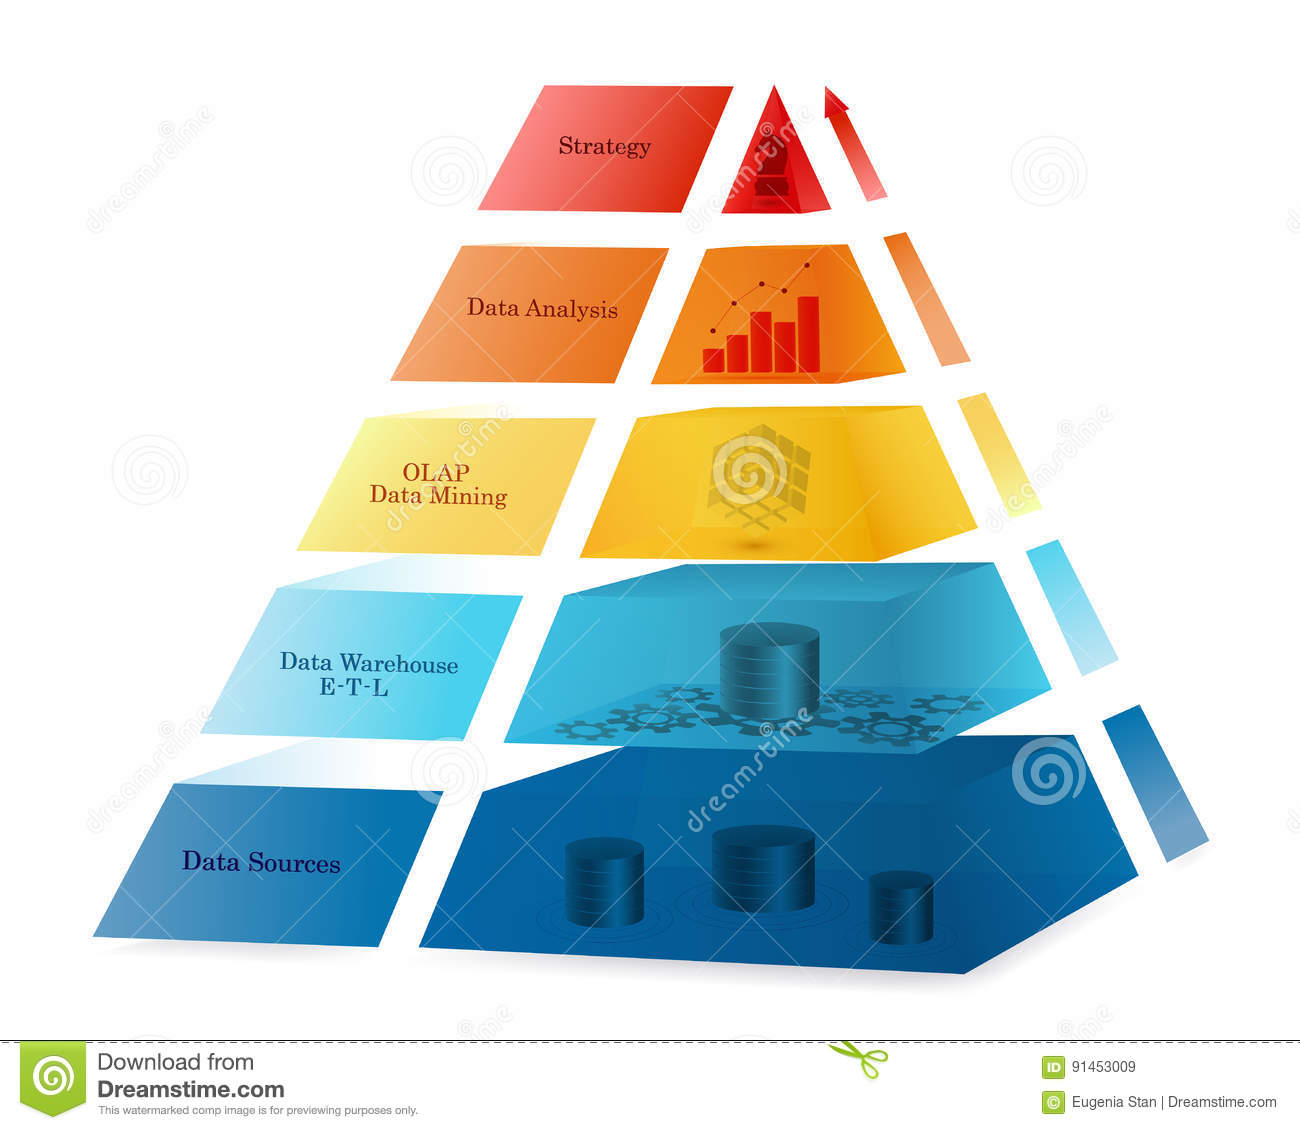 Data Etl Resume Site Warehouse: Business Intelligence Coloured Pyramid Concept Stock